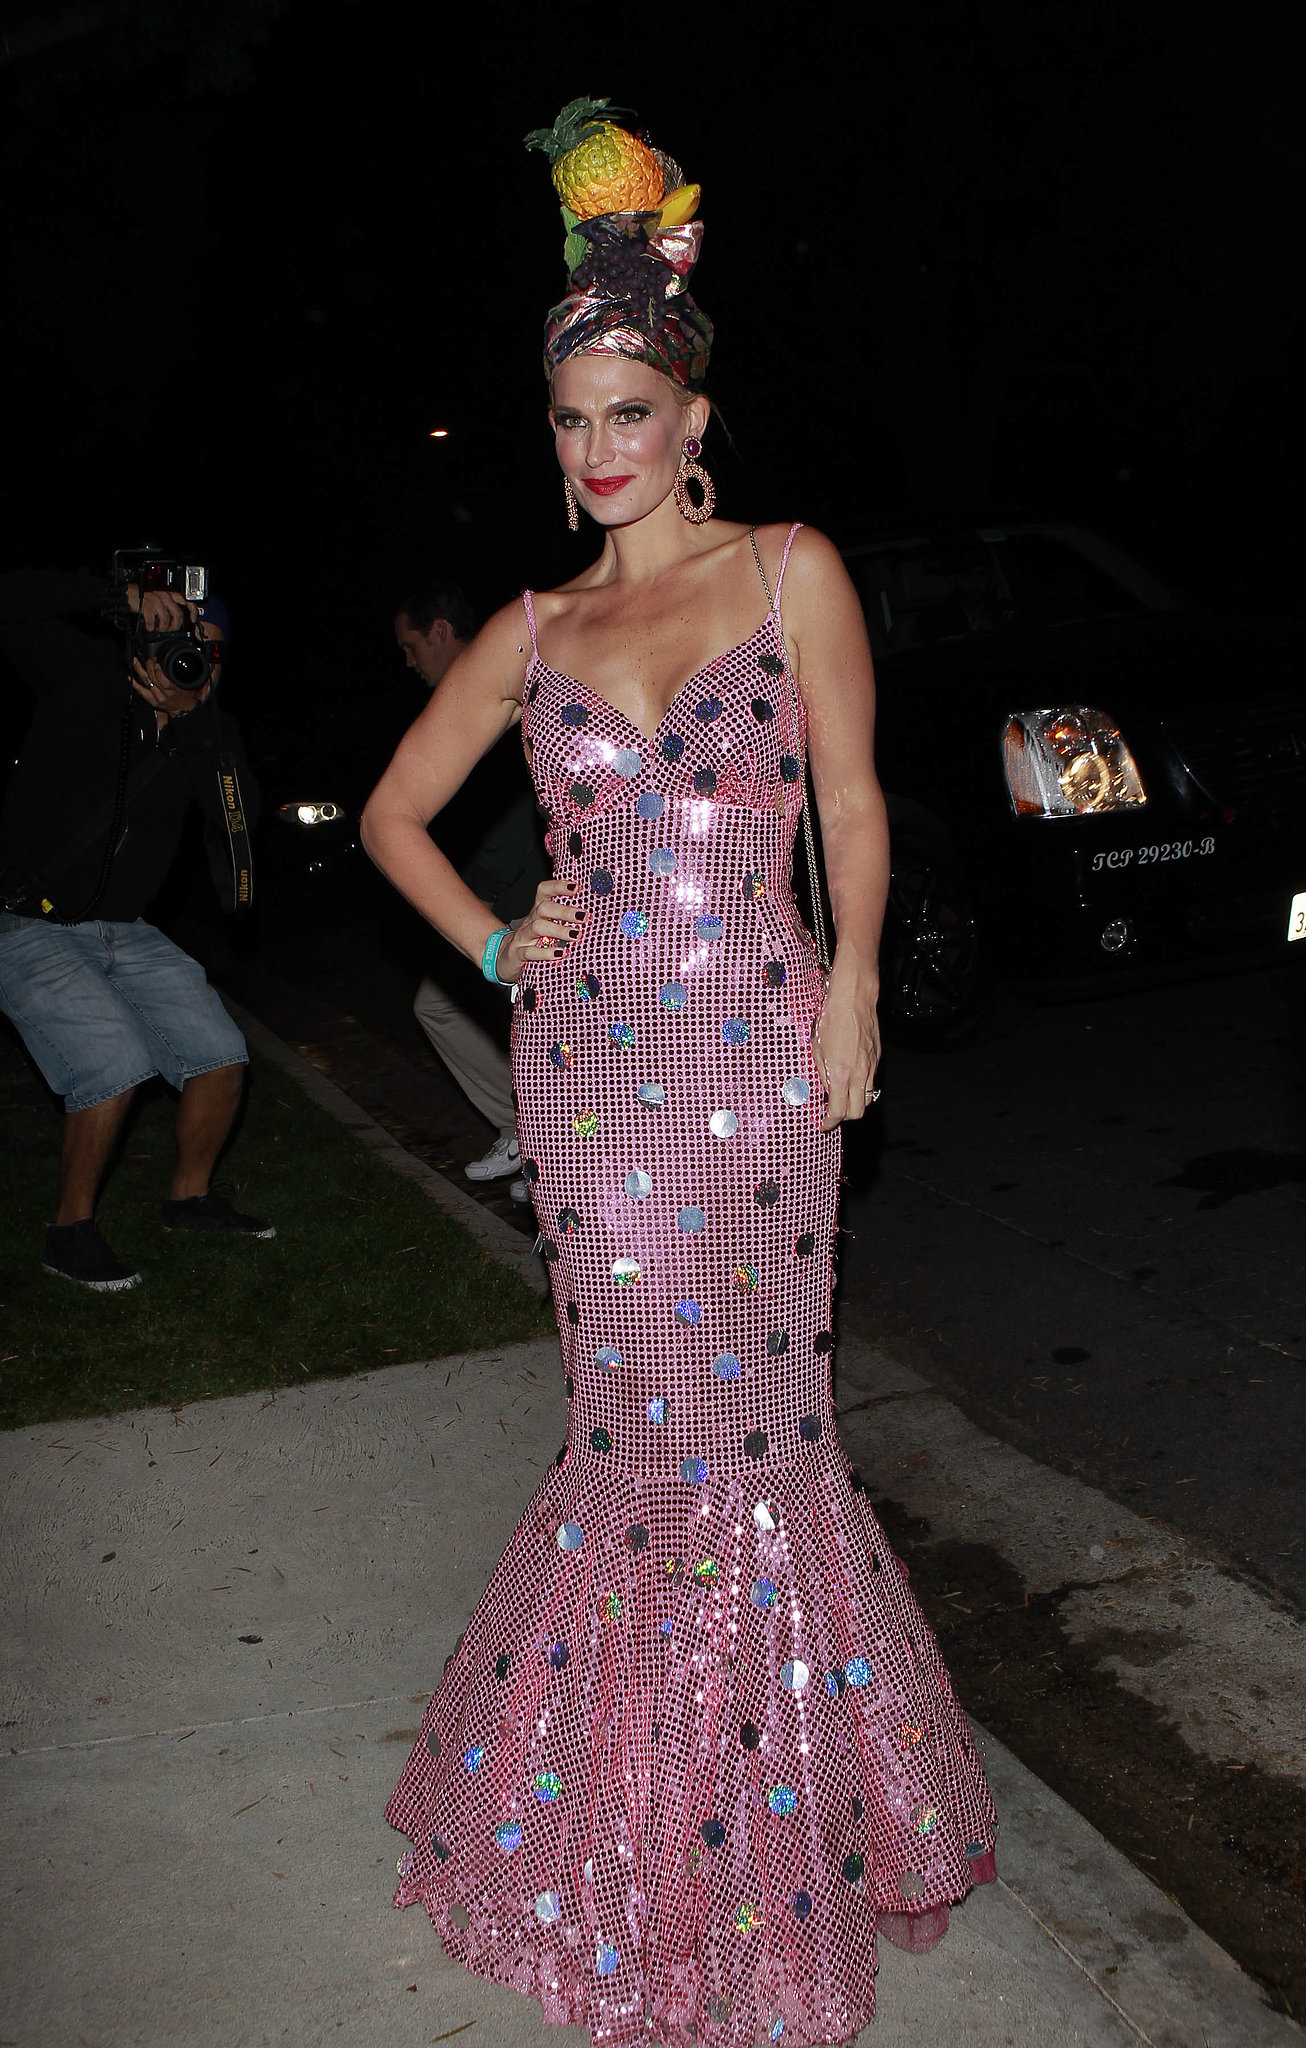 Molly Sims looked like she was aiming for a Chiquita Banana costume at the Casamigos Halloween Party.